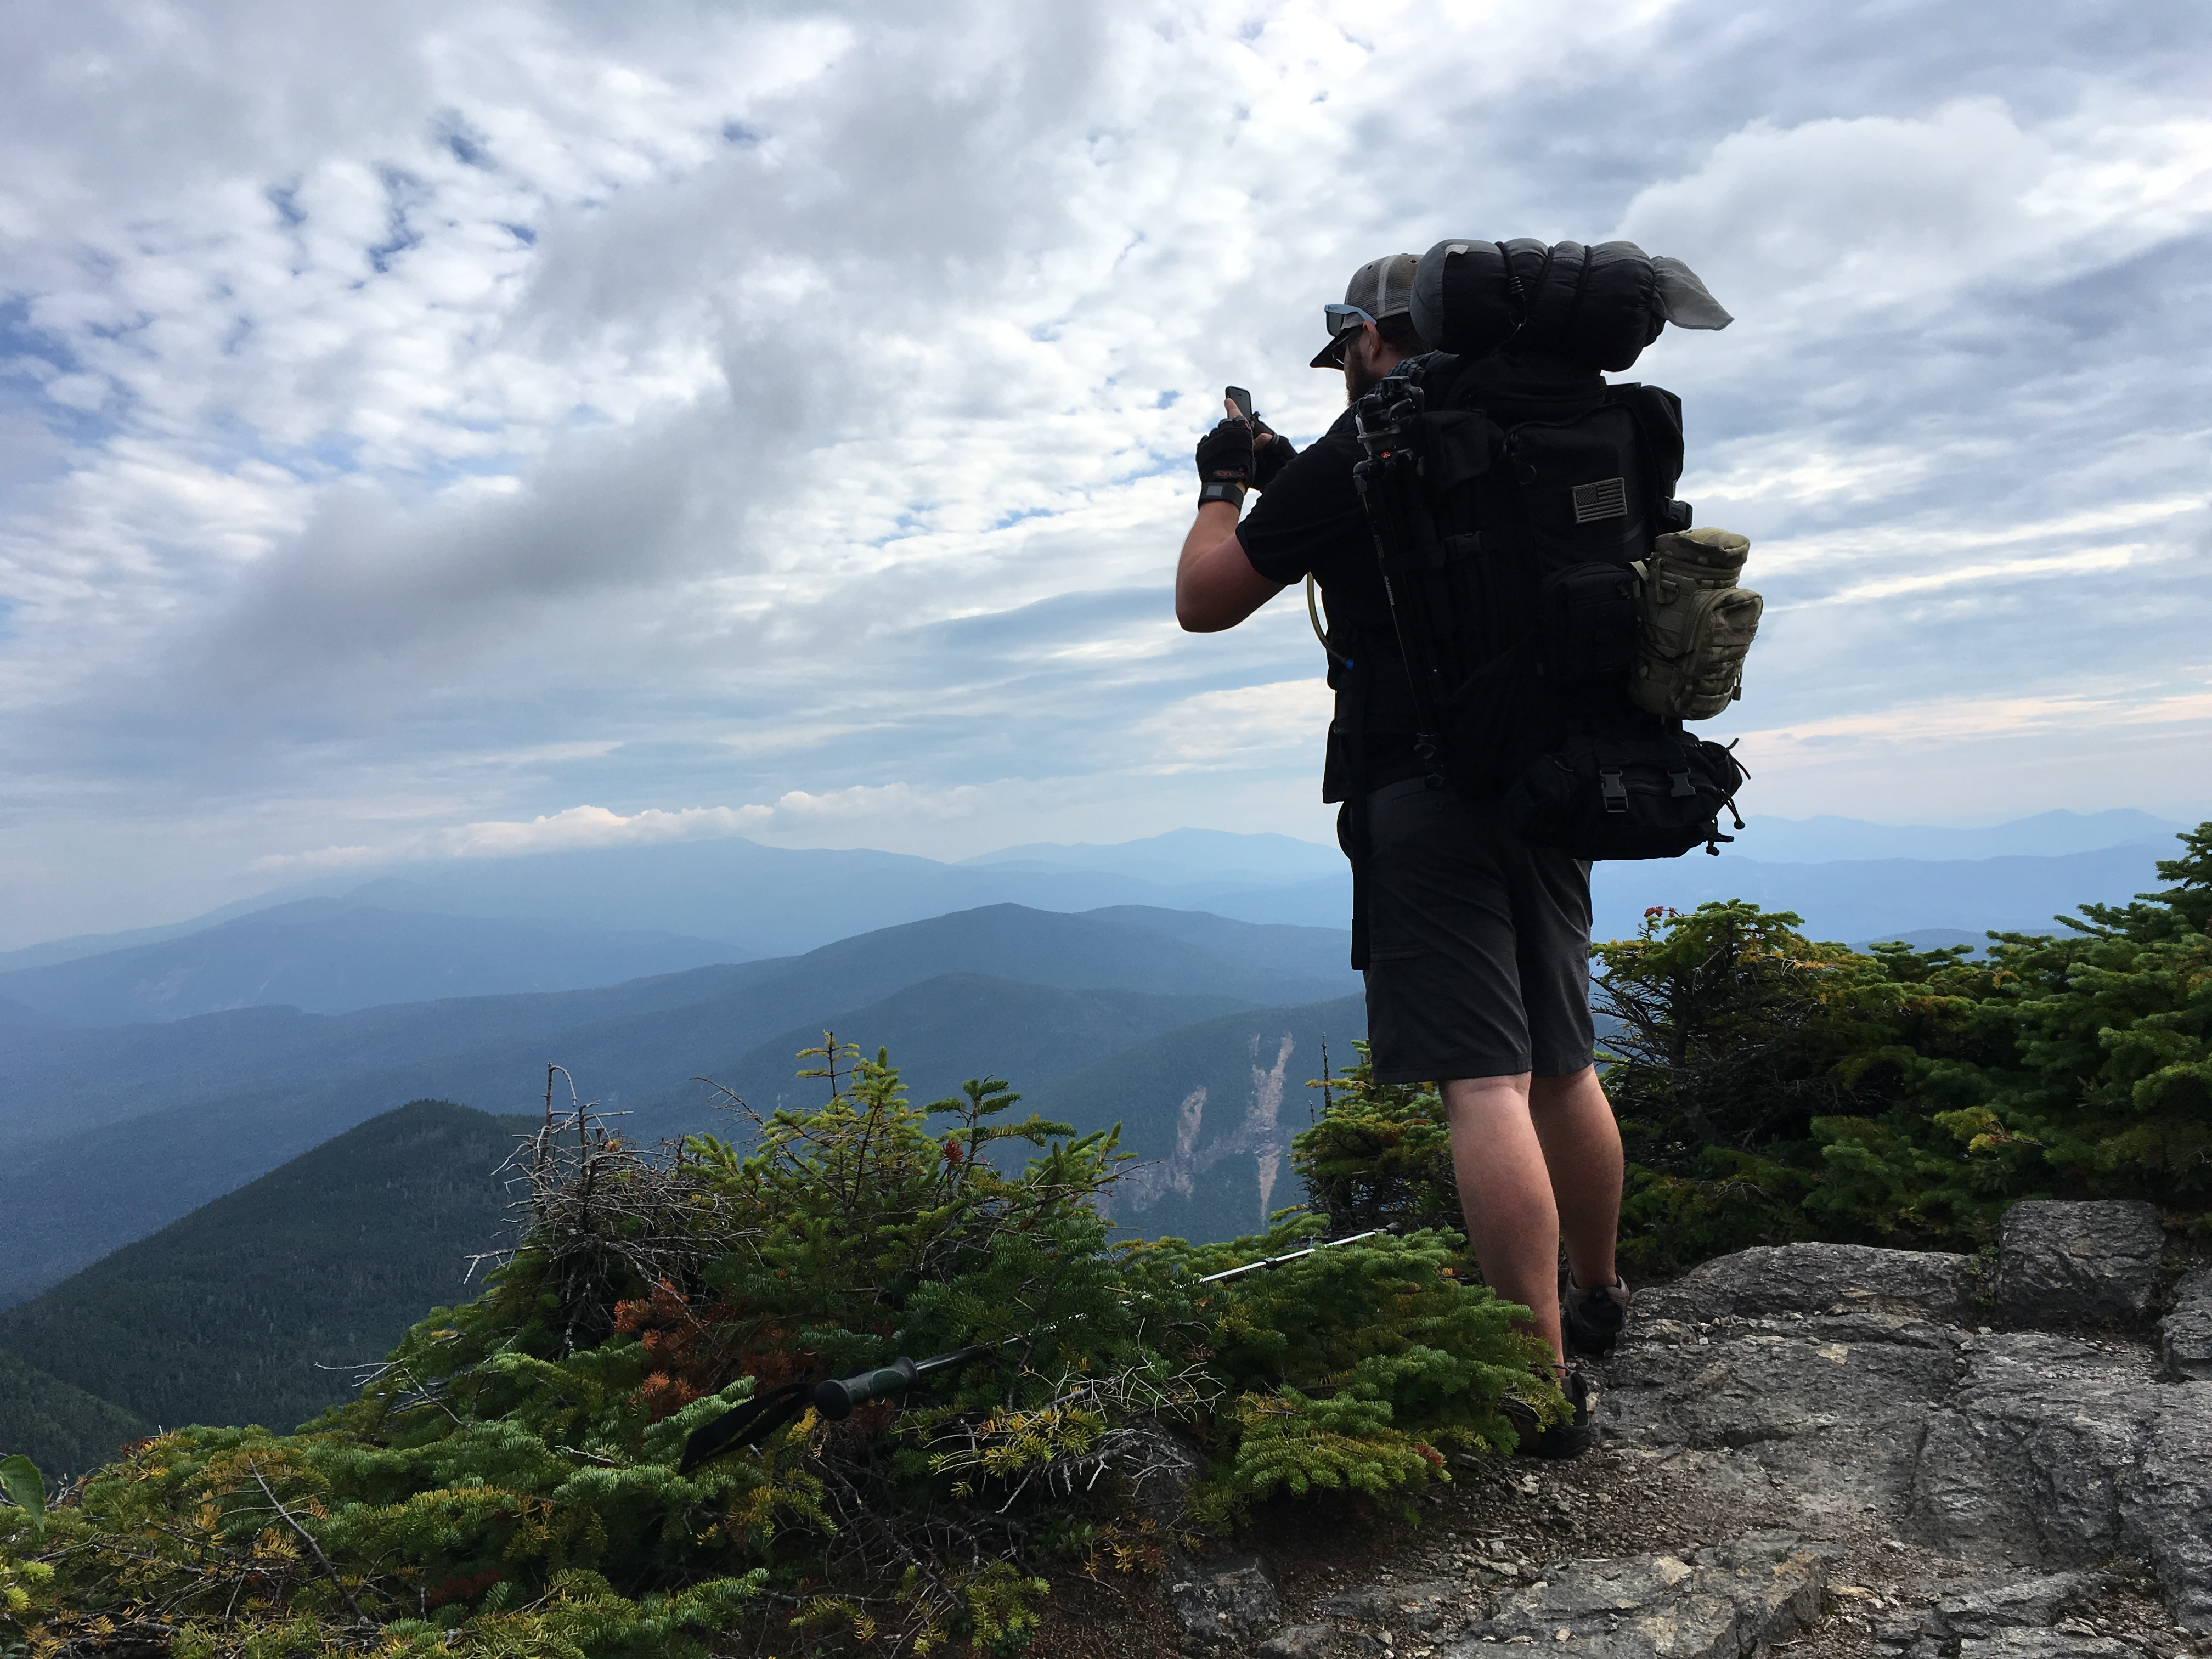 Grabbing a panoramic shot of the White Mountains on the way down. Photo by Michael Arestad.